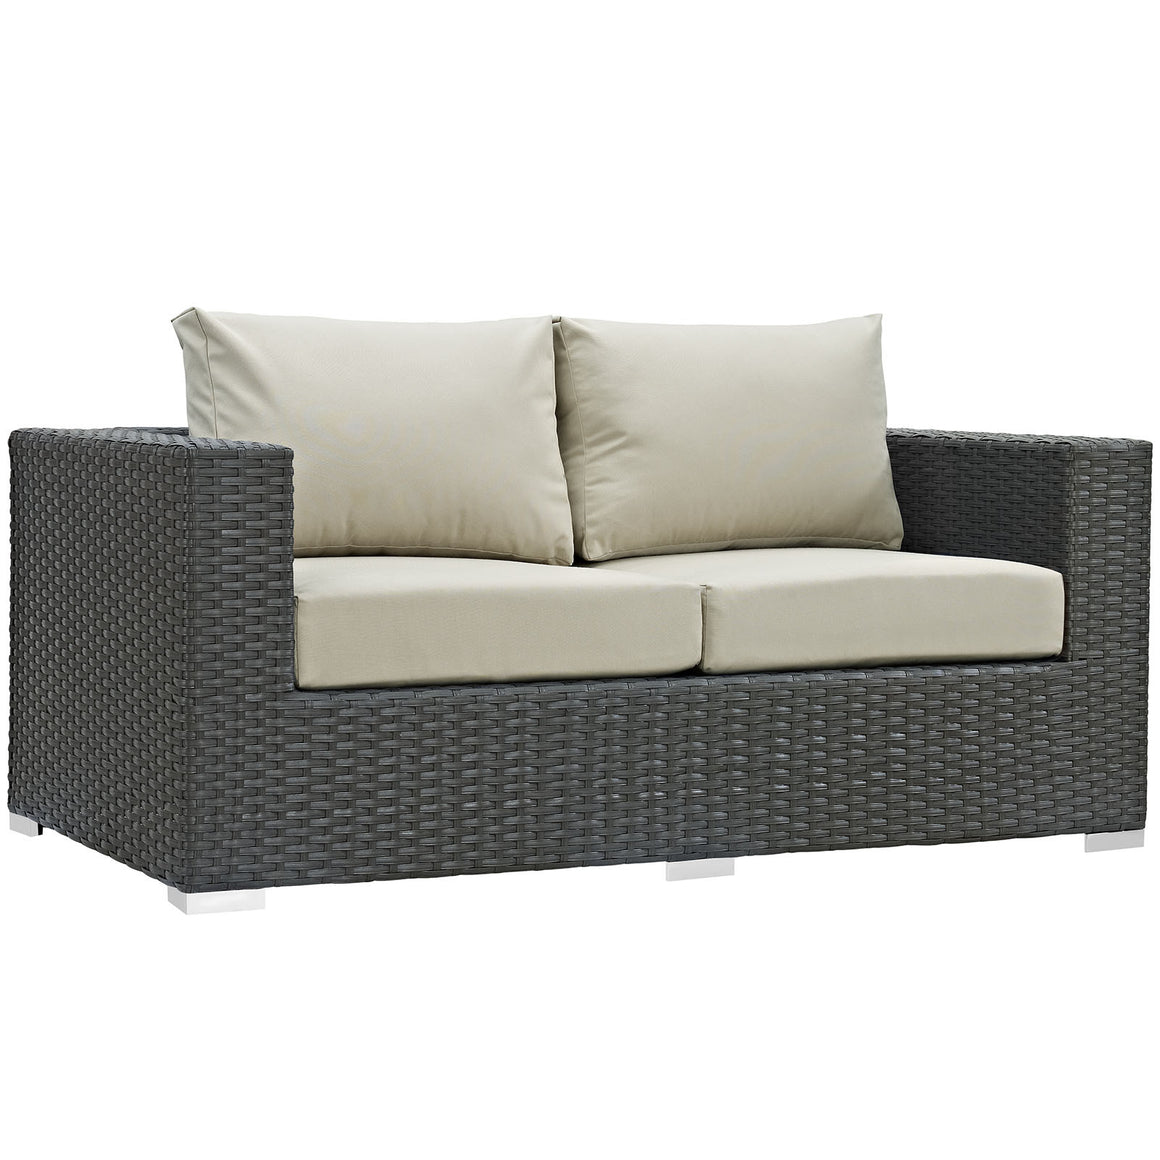 Sojourn Outdoor Patio Loveseat